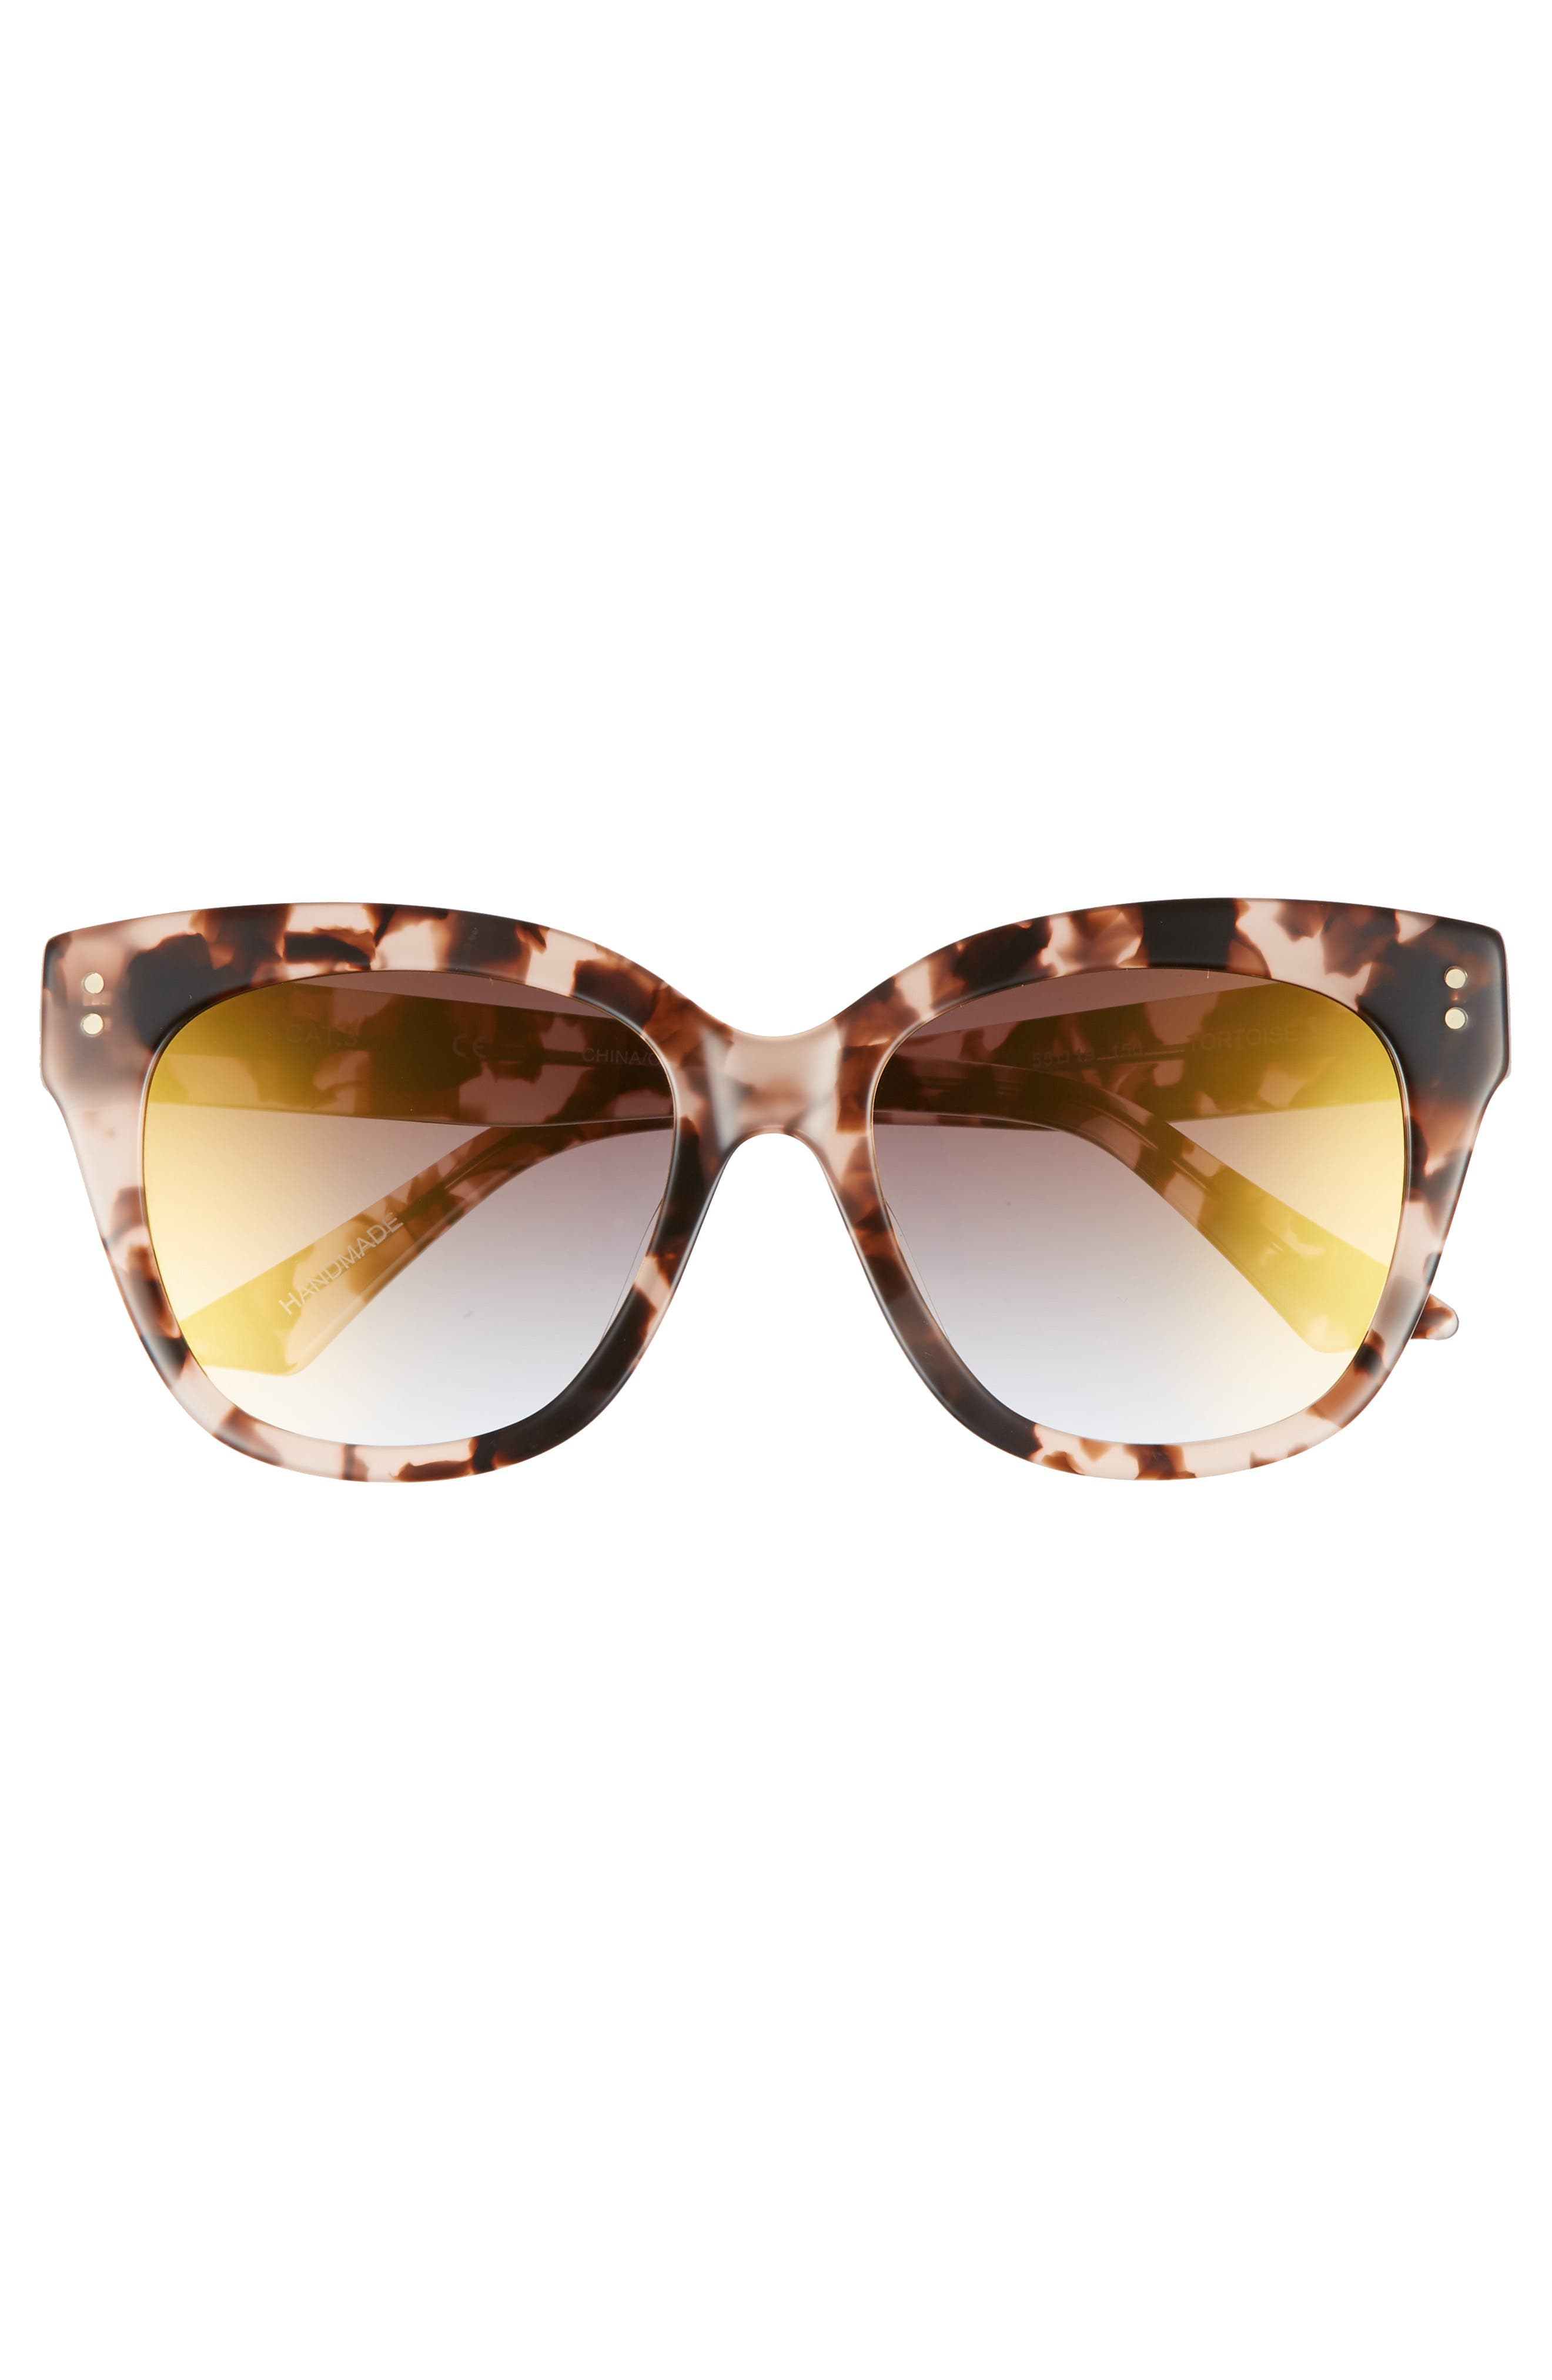 See Saw 55mm Cat Eye Sunglasses,                             Alternate thumbnail 3, color,                             Dogwood- Gold